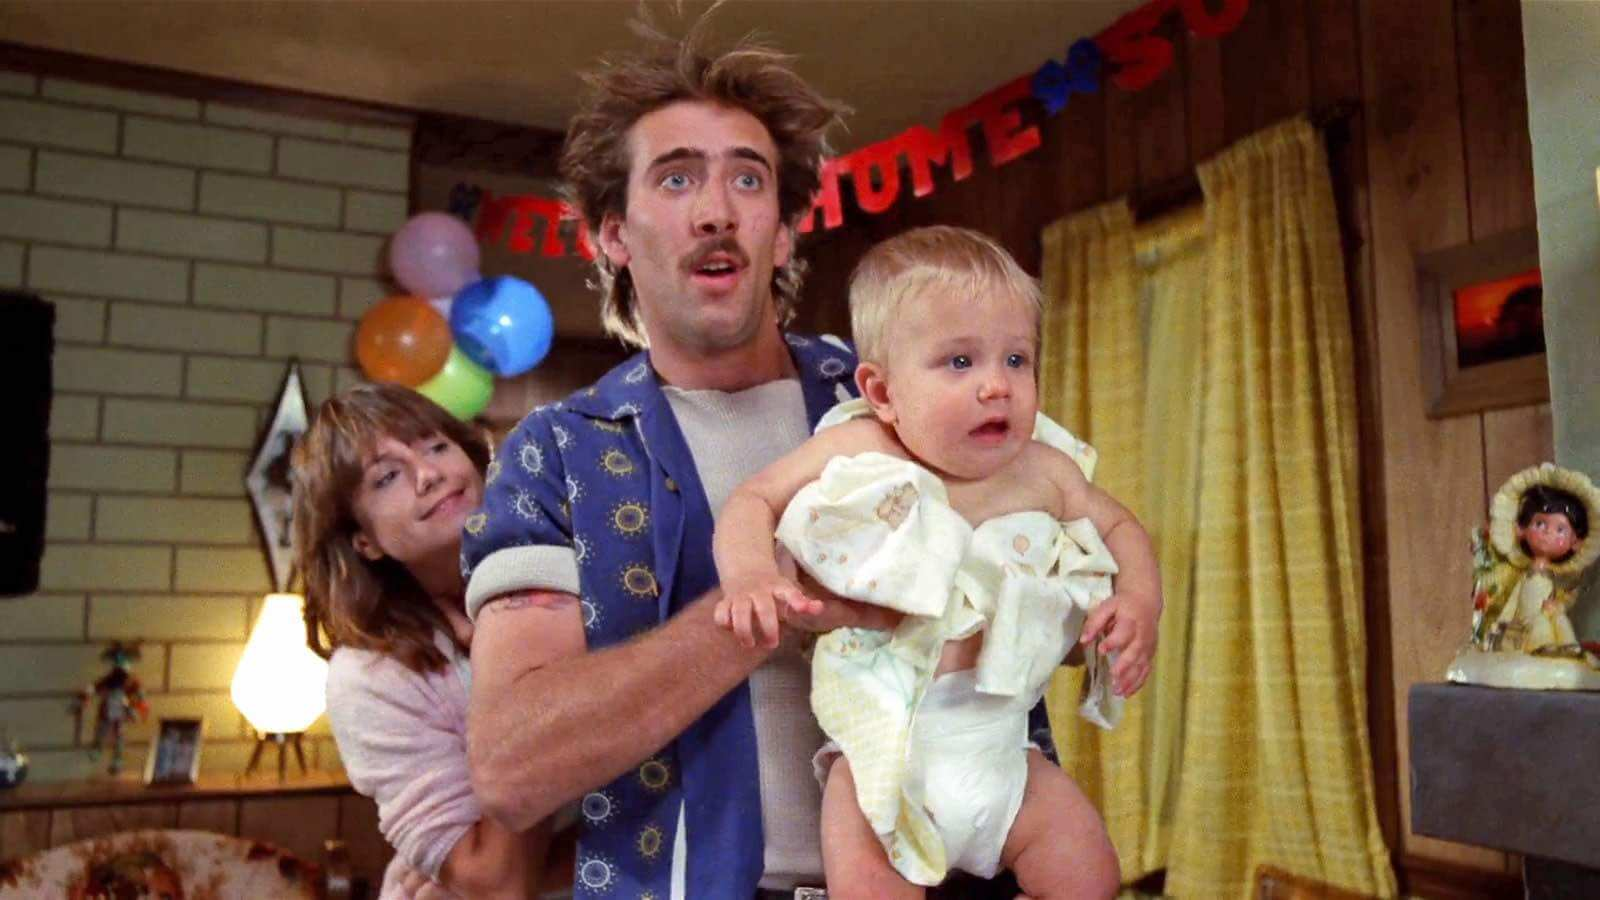 Dark Comedy Movies - Raising Arizona